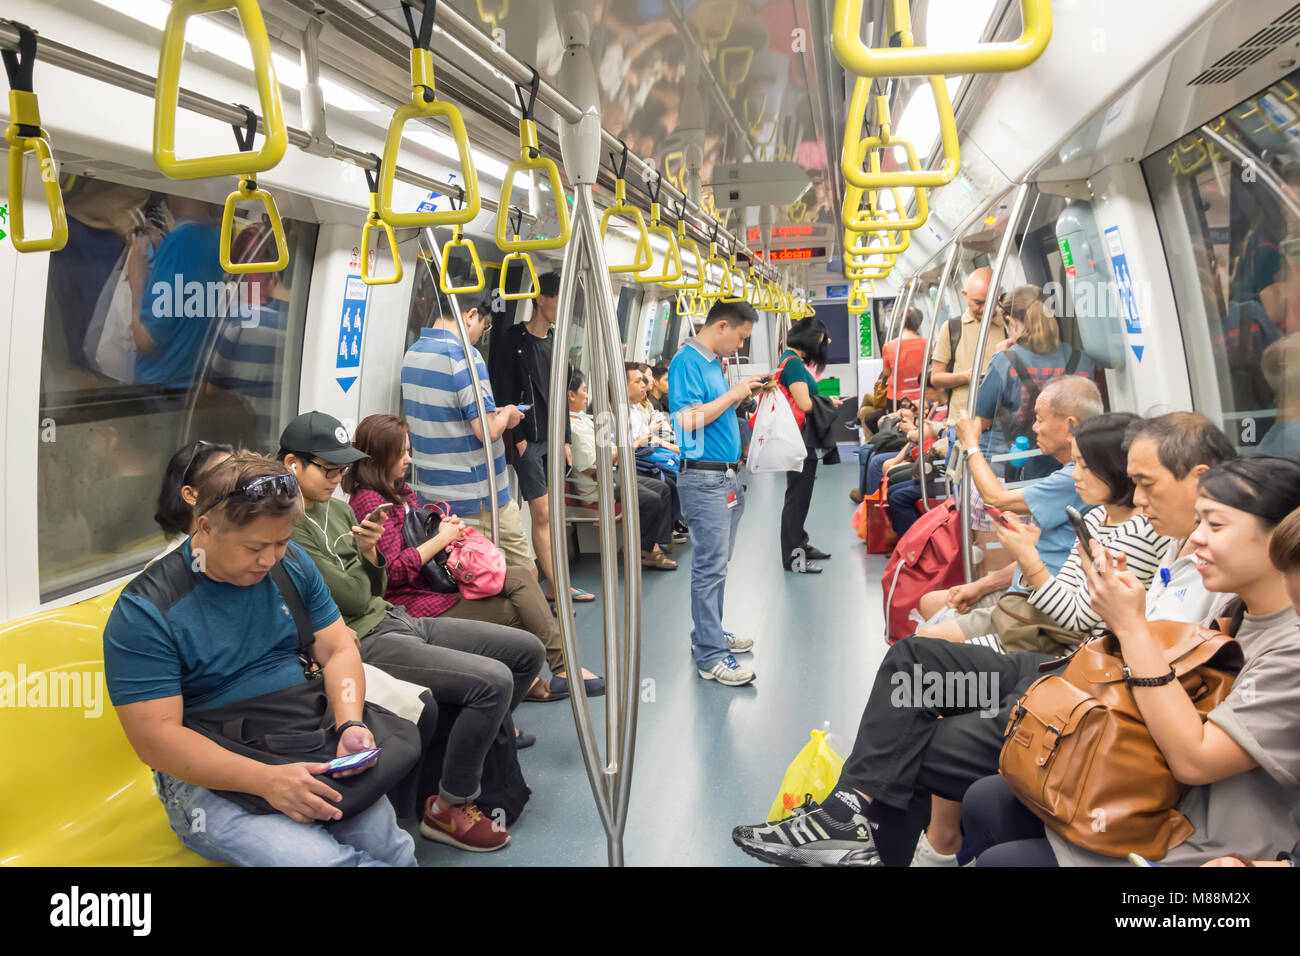 Carriage interior on Singapore Mass Rapid Transit (MRT), Serangoon, North-East Region, Singapore - Stock Image